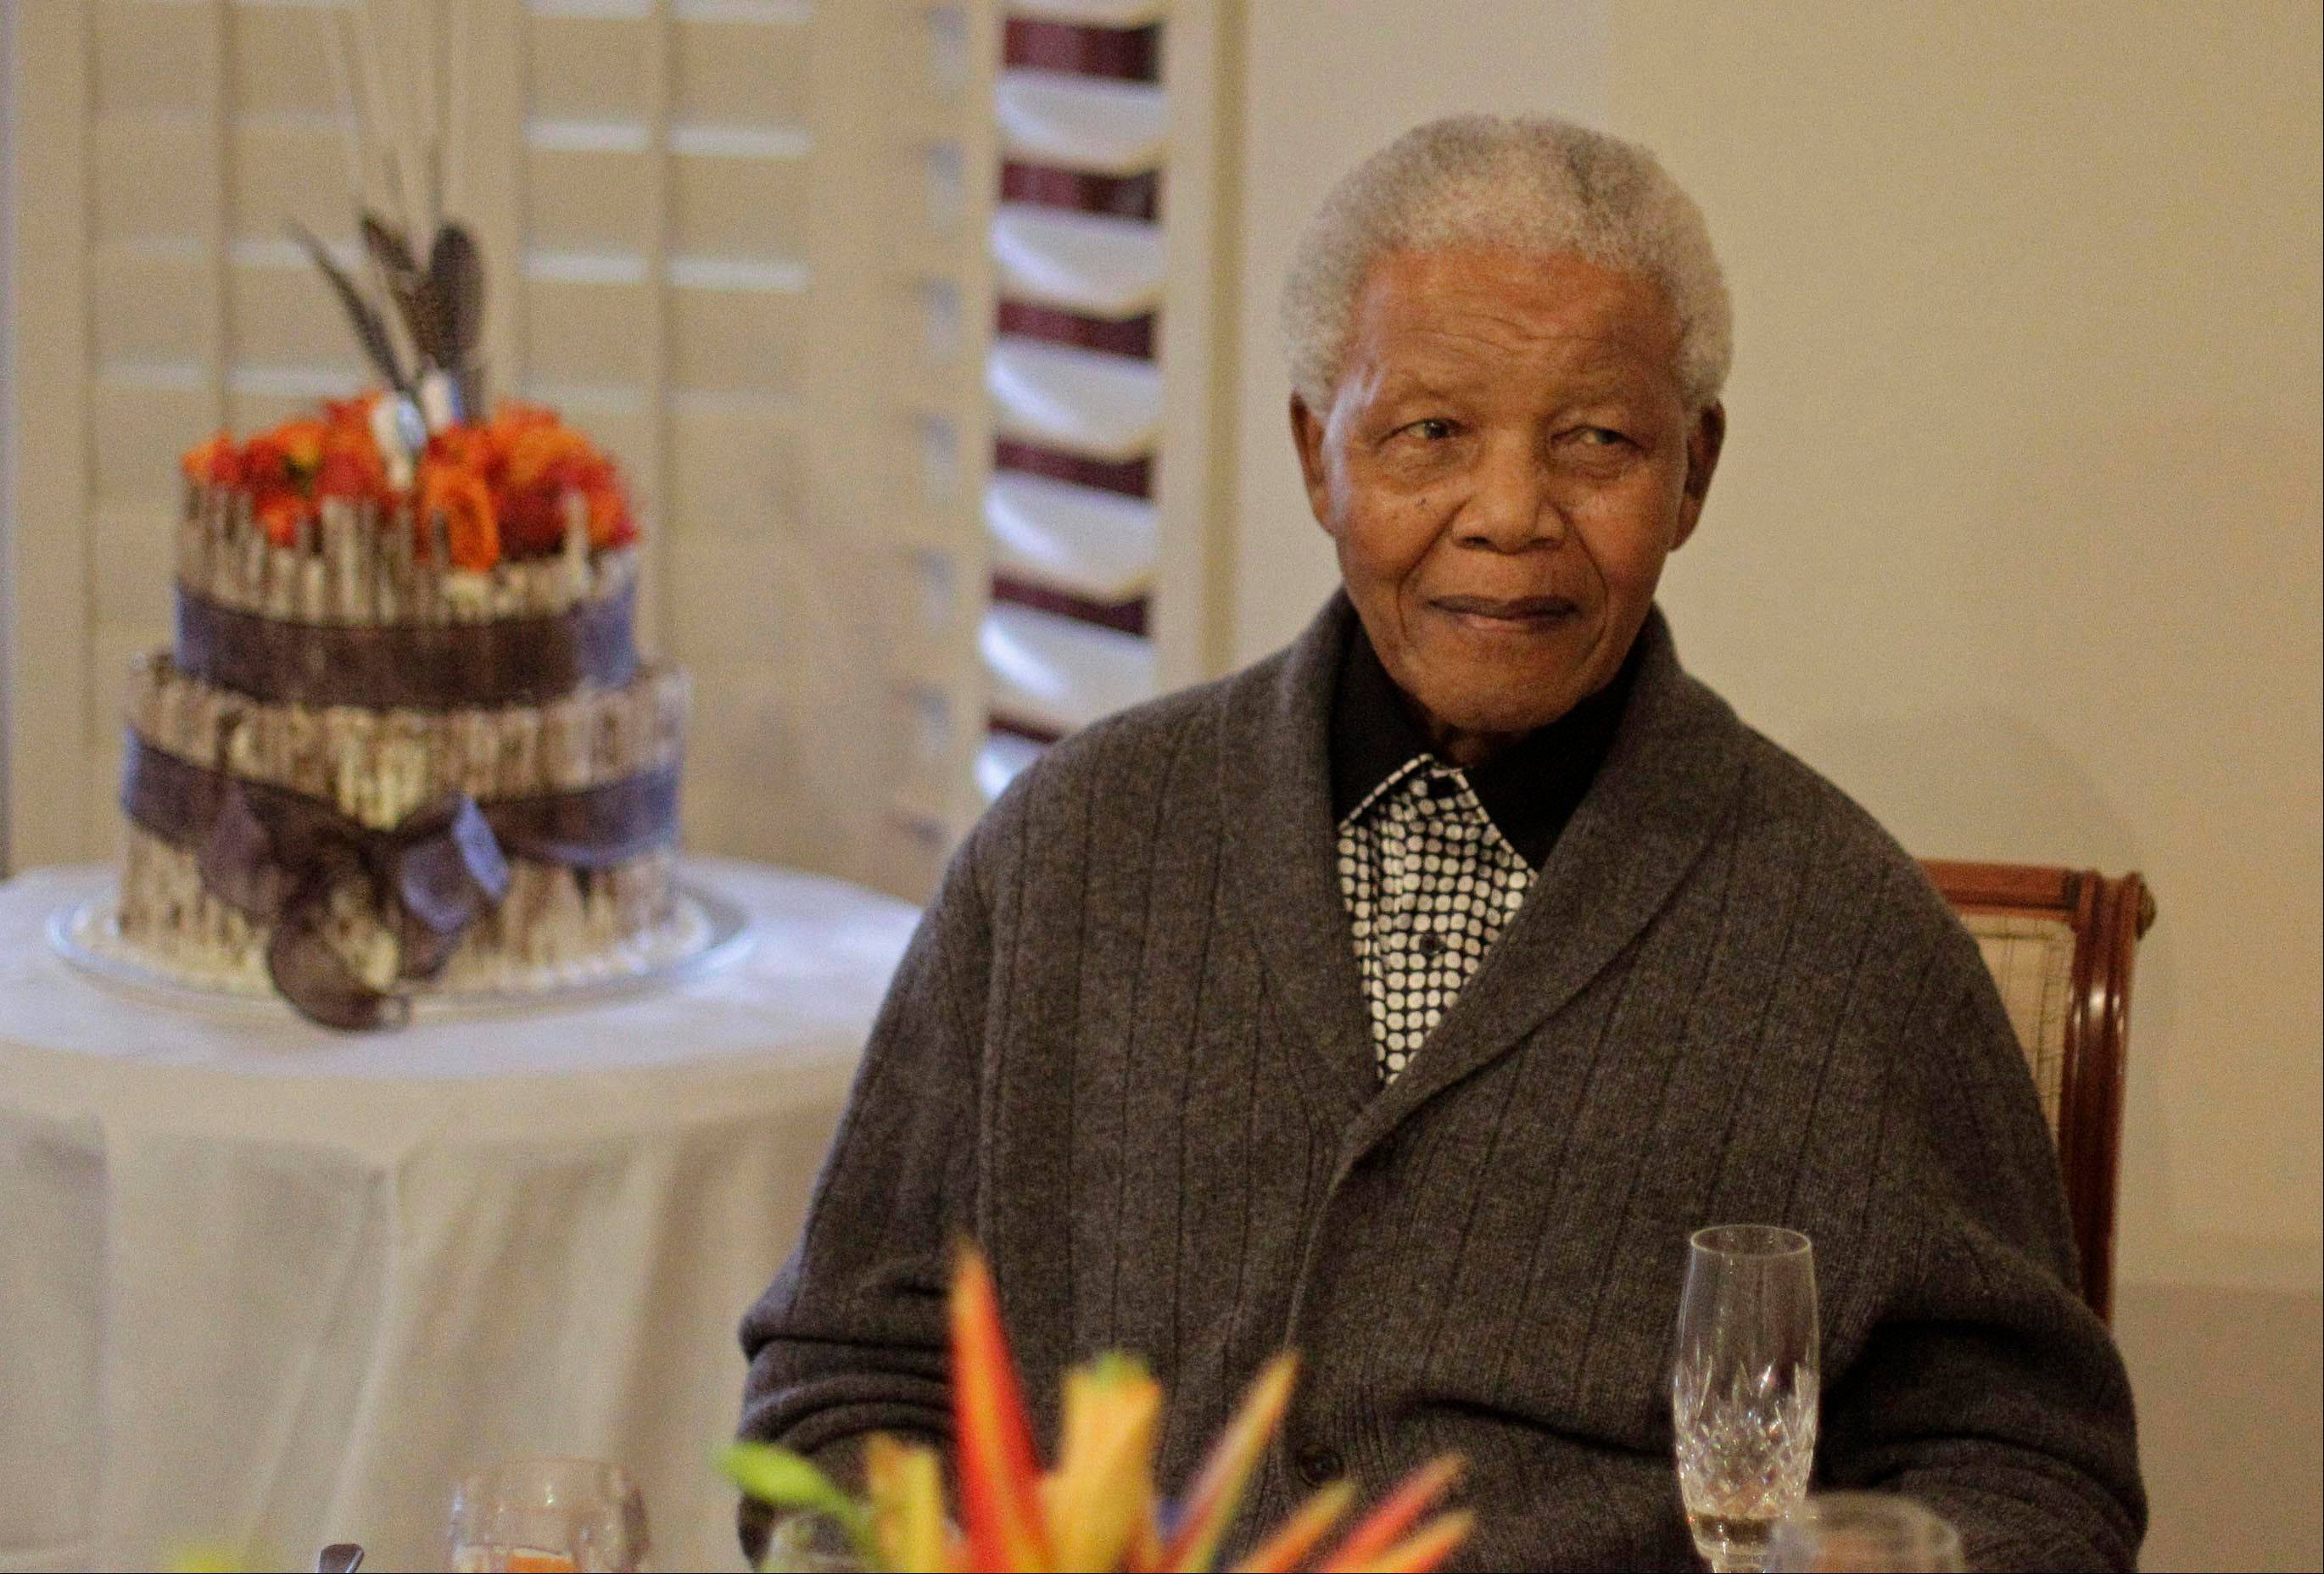 In this Wednesday, July 18, 2012 file photo, former South African President Nelson Mandela celebrates his 94th birthday with family in Qunu, South Africa.